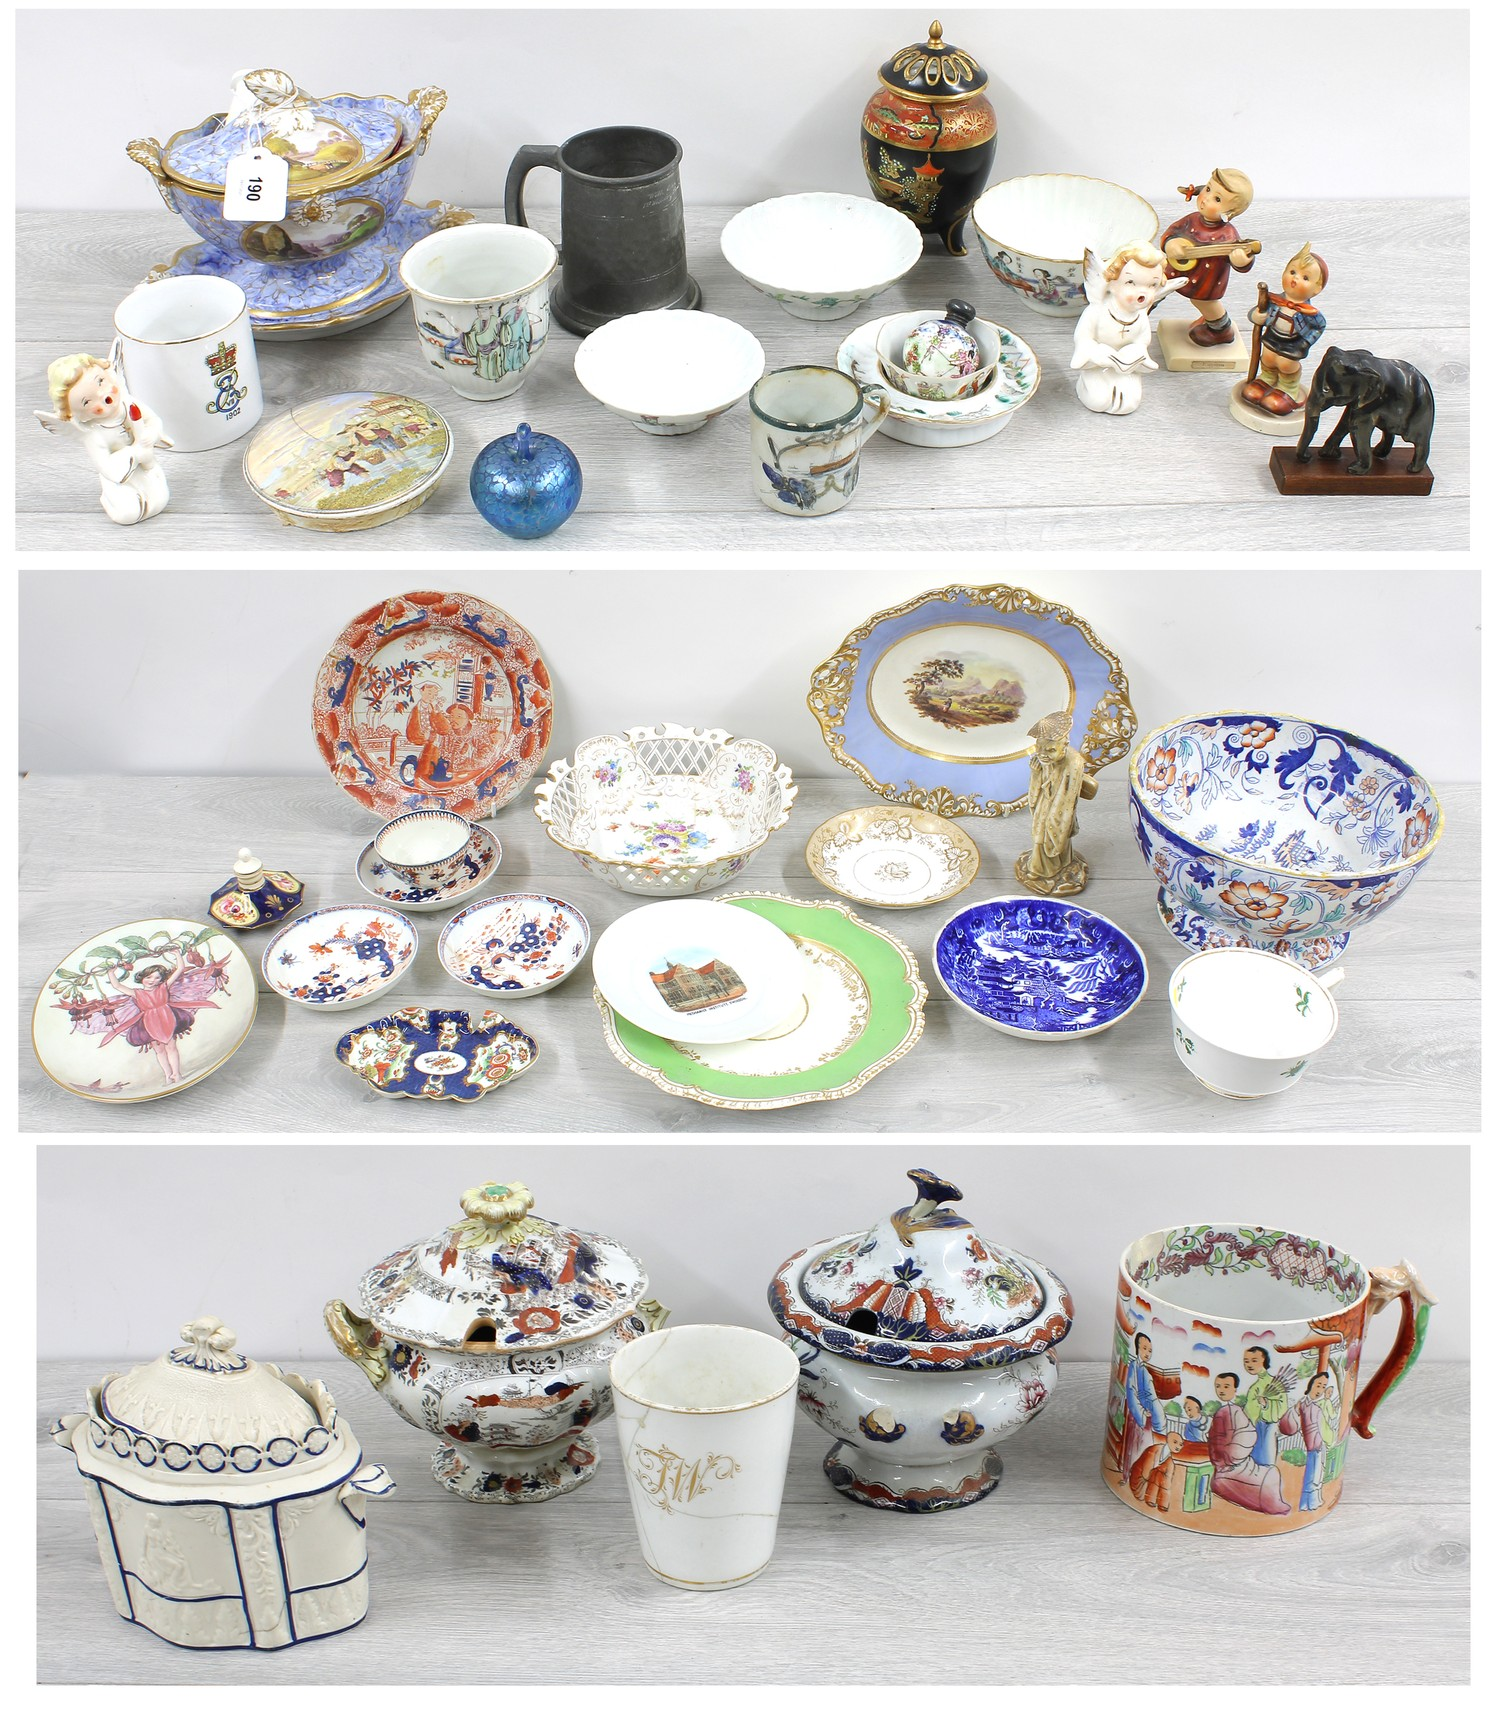 Large collection of assorted porcelain and pottery including tureens, teapots, tea bowls/cups and